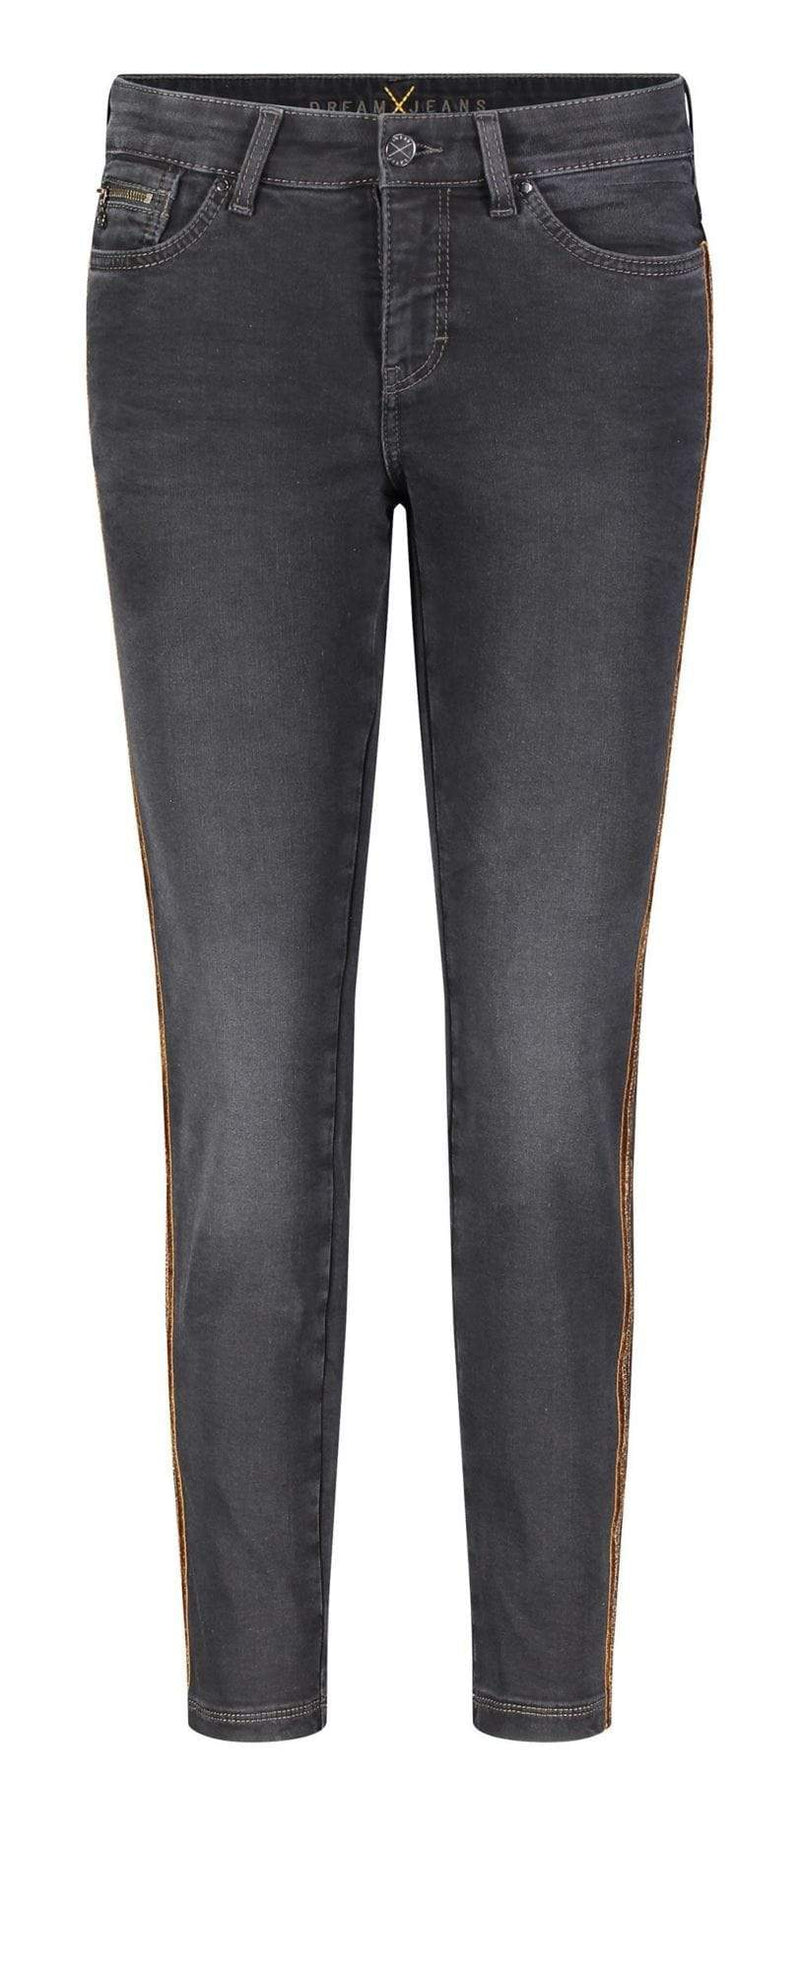 Mac Jeans Jeans Mac Dream Slim Black Wash With Tan Velvet and sparkly side seam Jean 5435 0355L D983 izzi-of-baslow